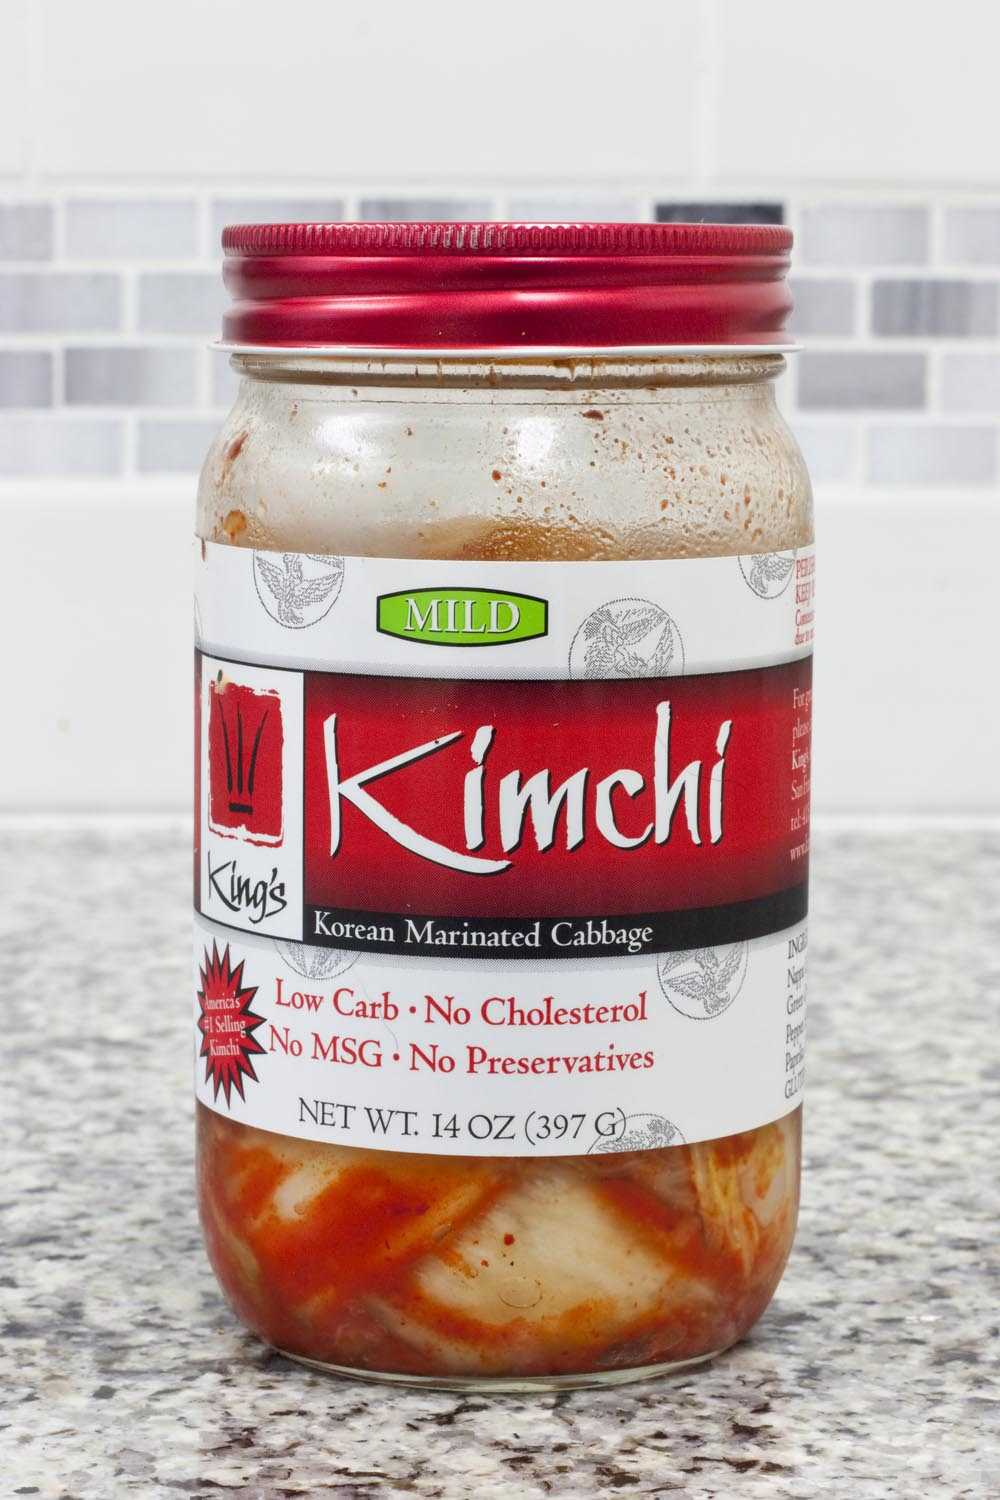 Fermented foods with living cultures are commercially available